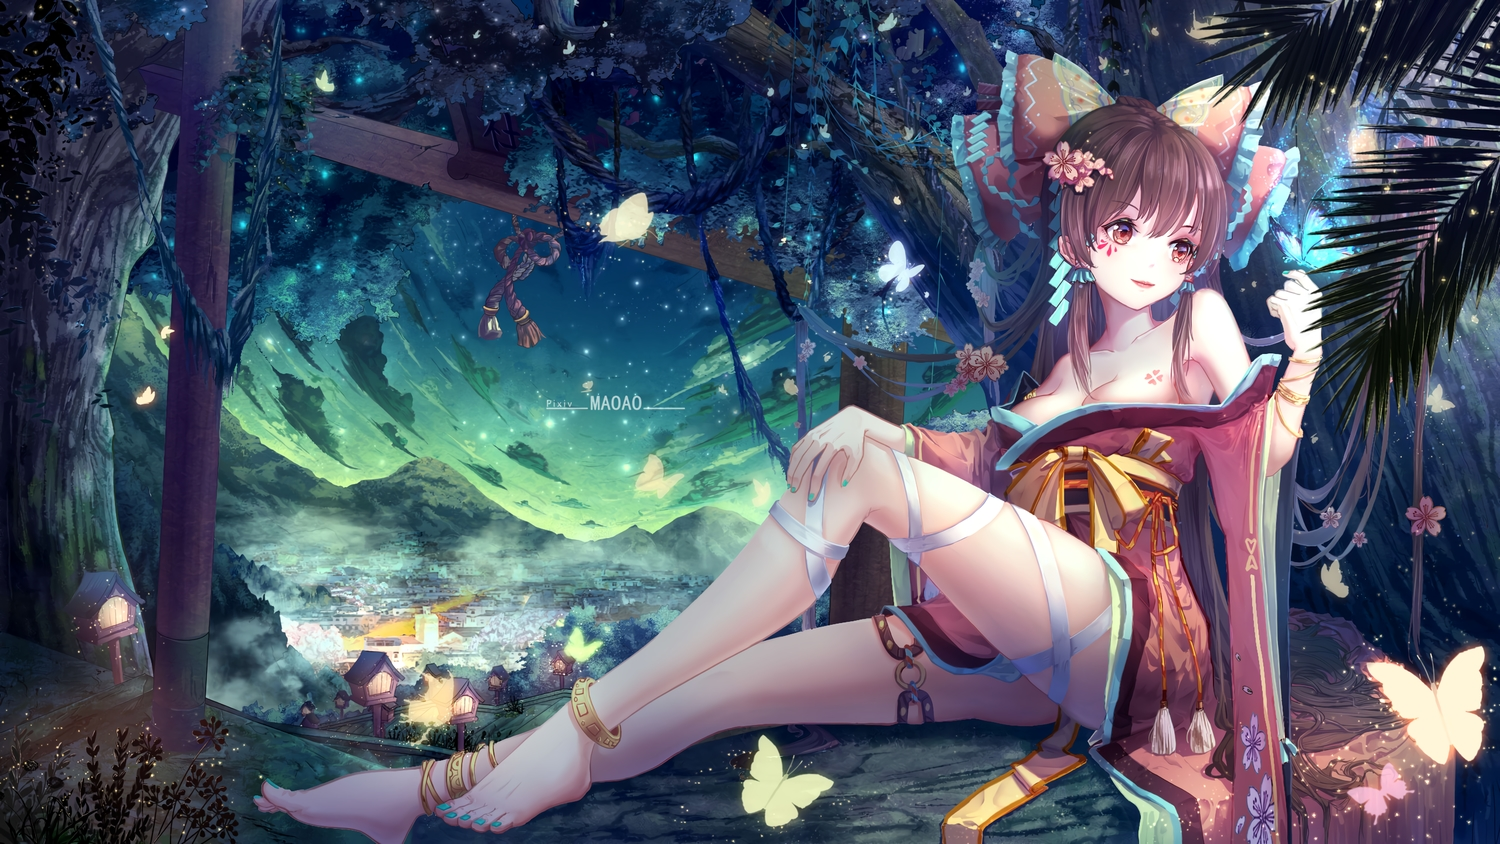 barefoot butterfly clouds hakurei_reimu japanese_clothes long_hair maoao sky torii touhou watermark